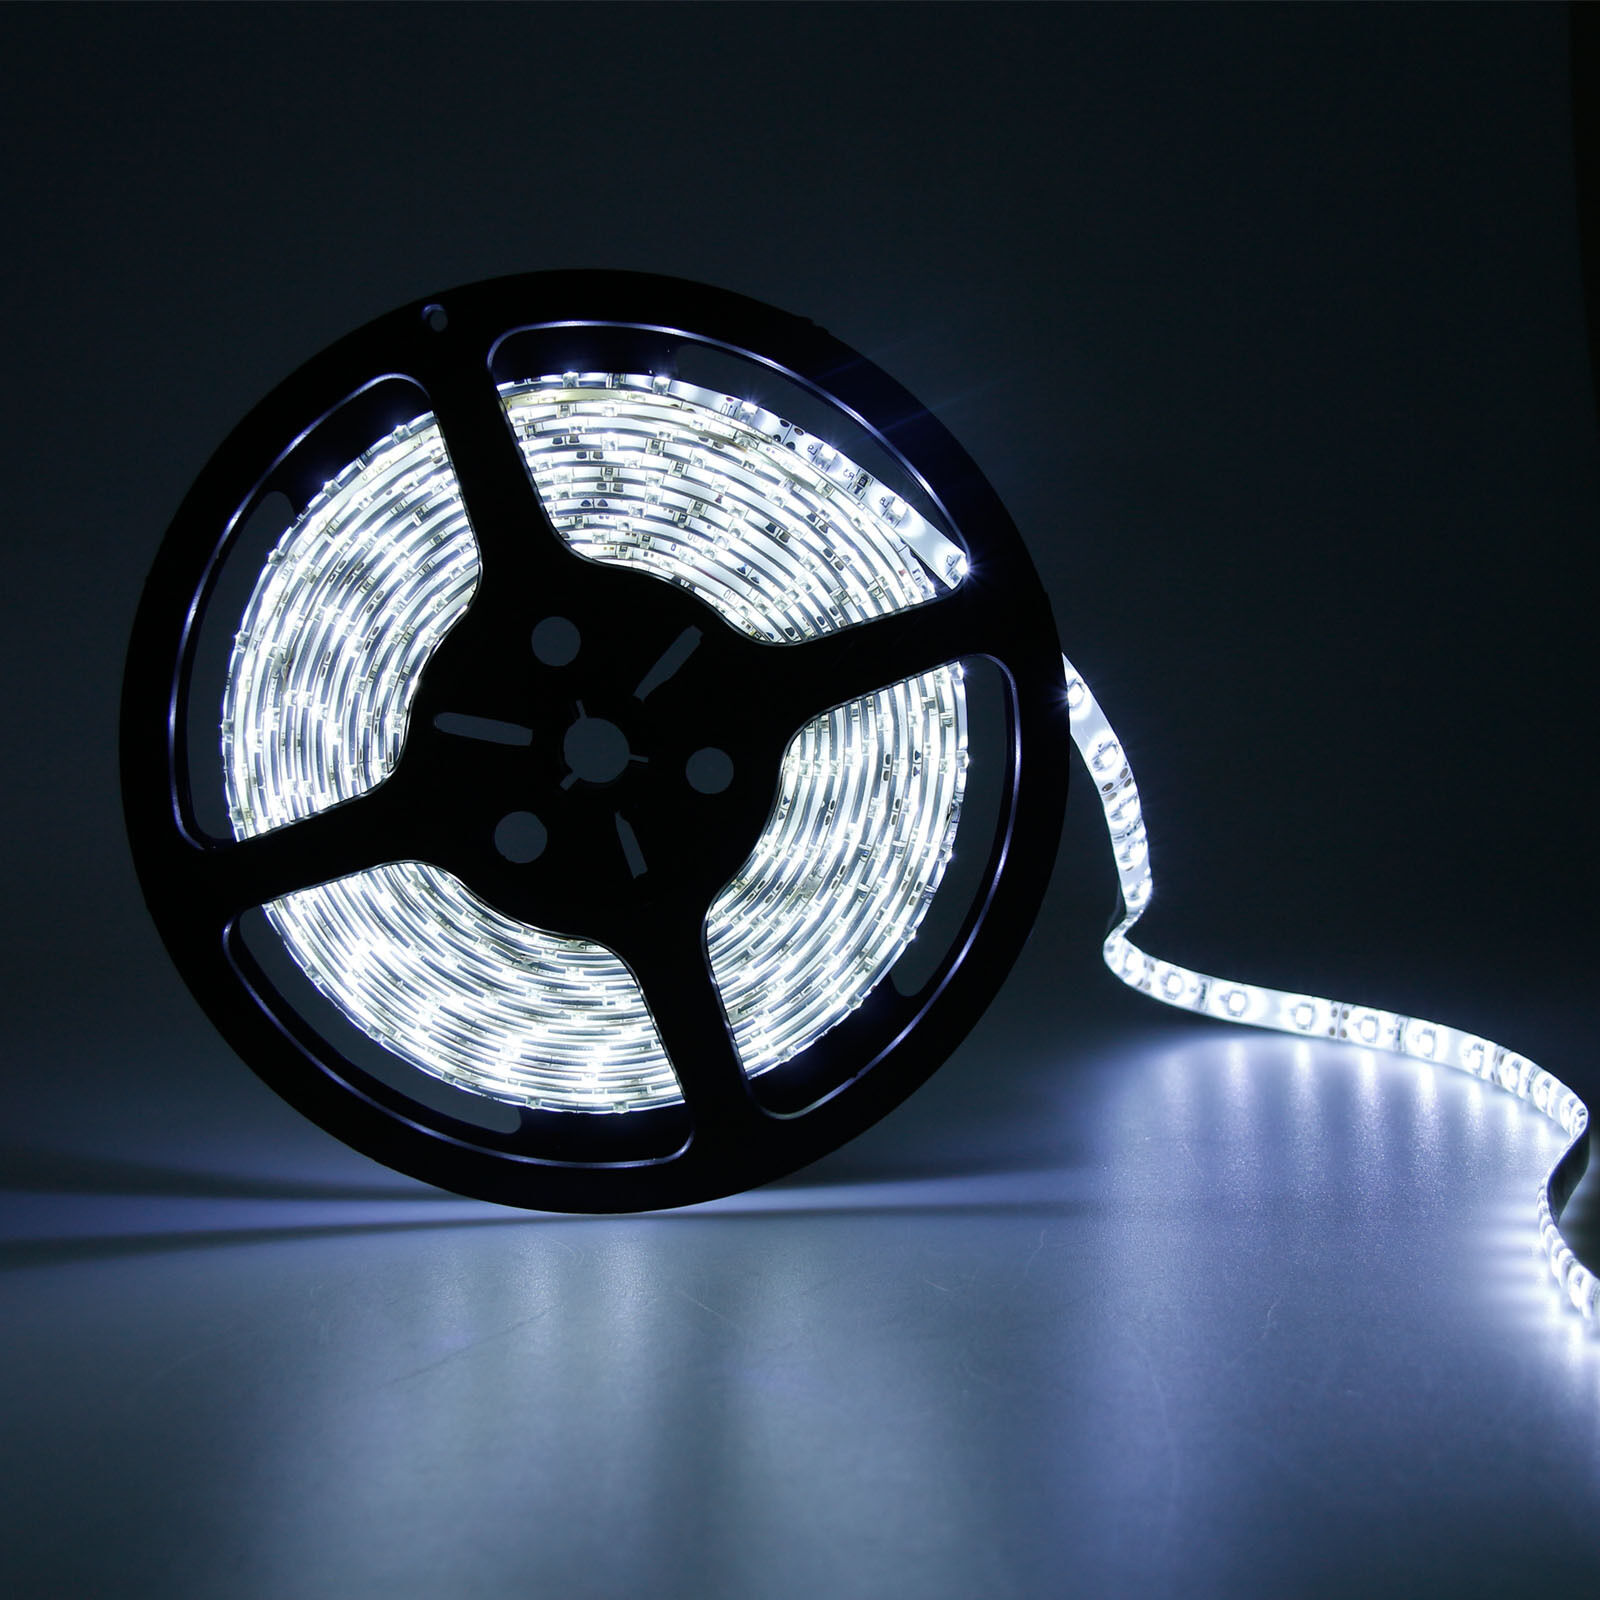 12v waterproof led strip light 5m 300leds for boat truck. Black Bedroom Furniture Sets. Home Design Ideas